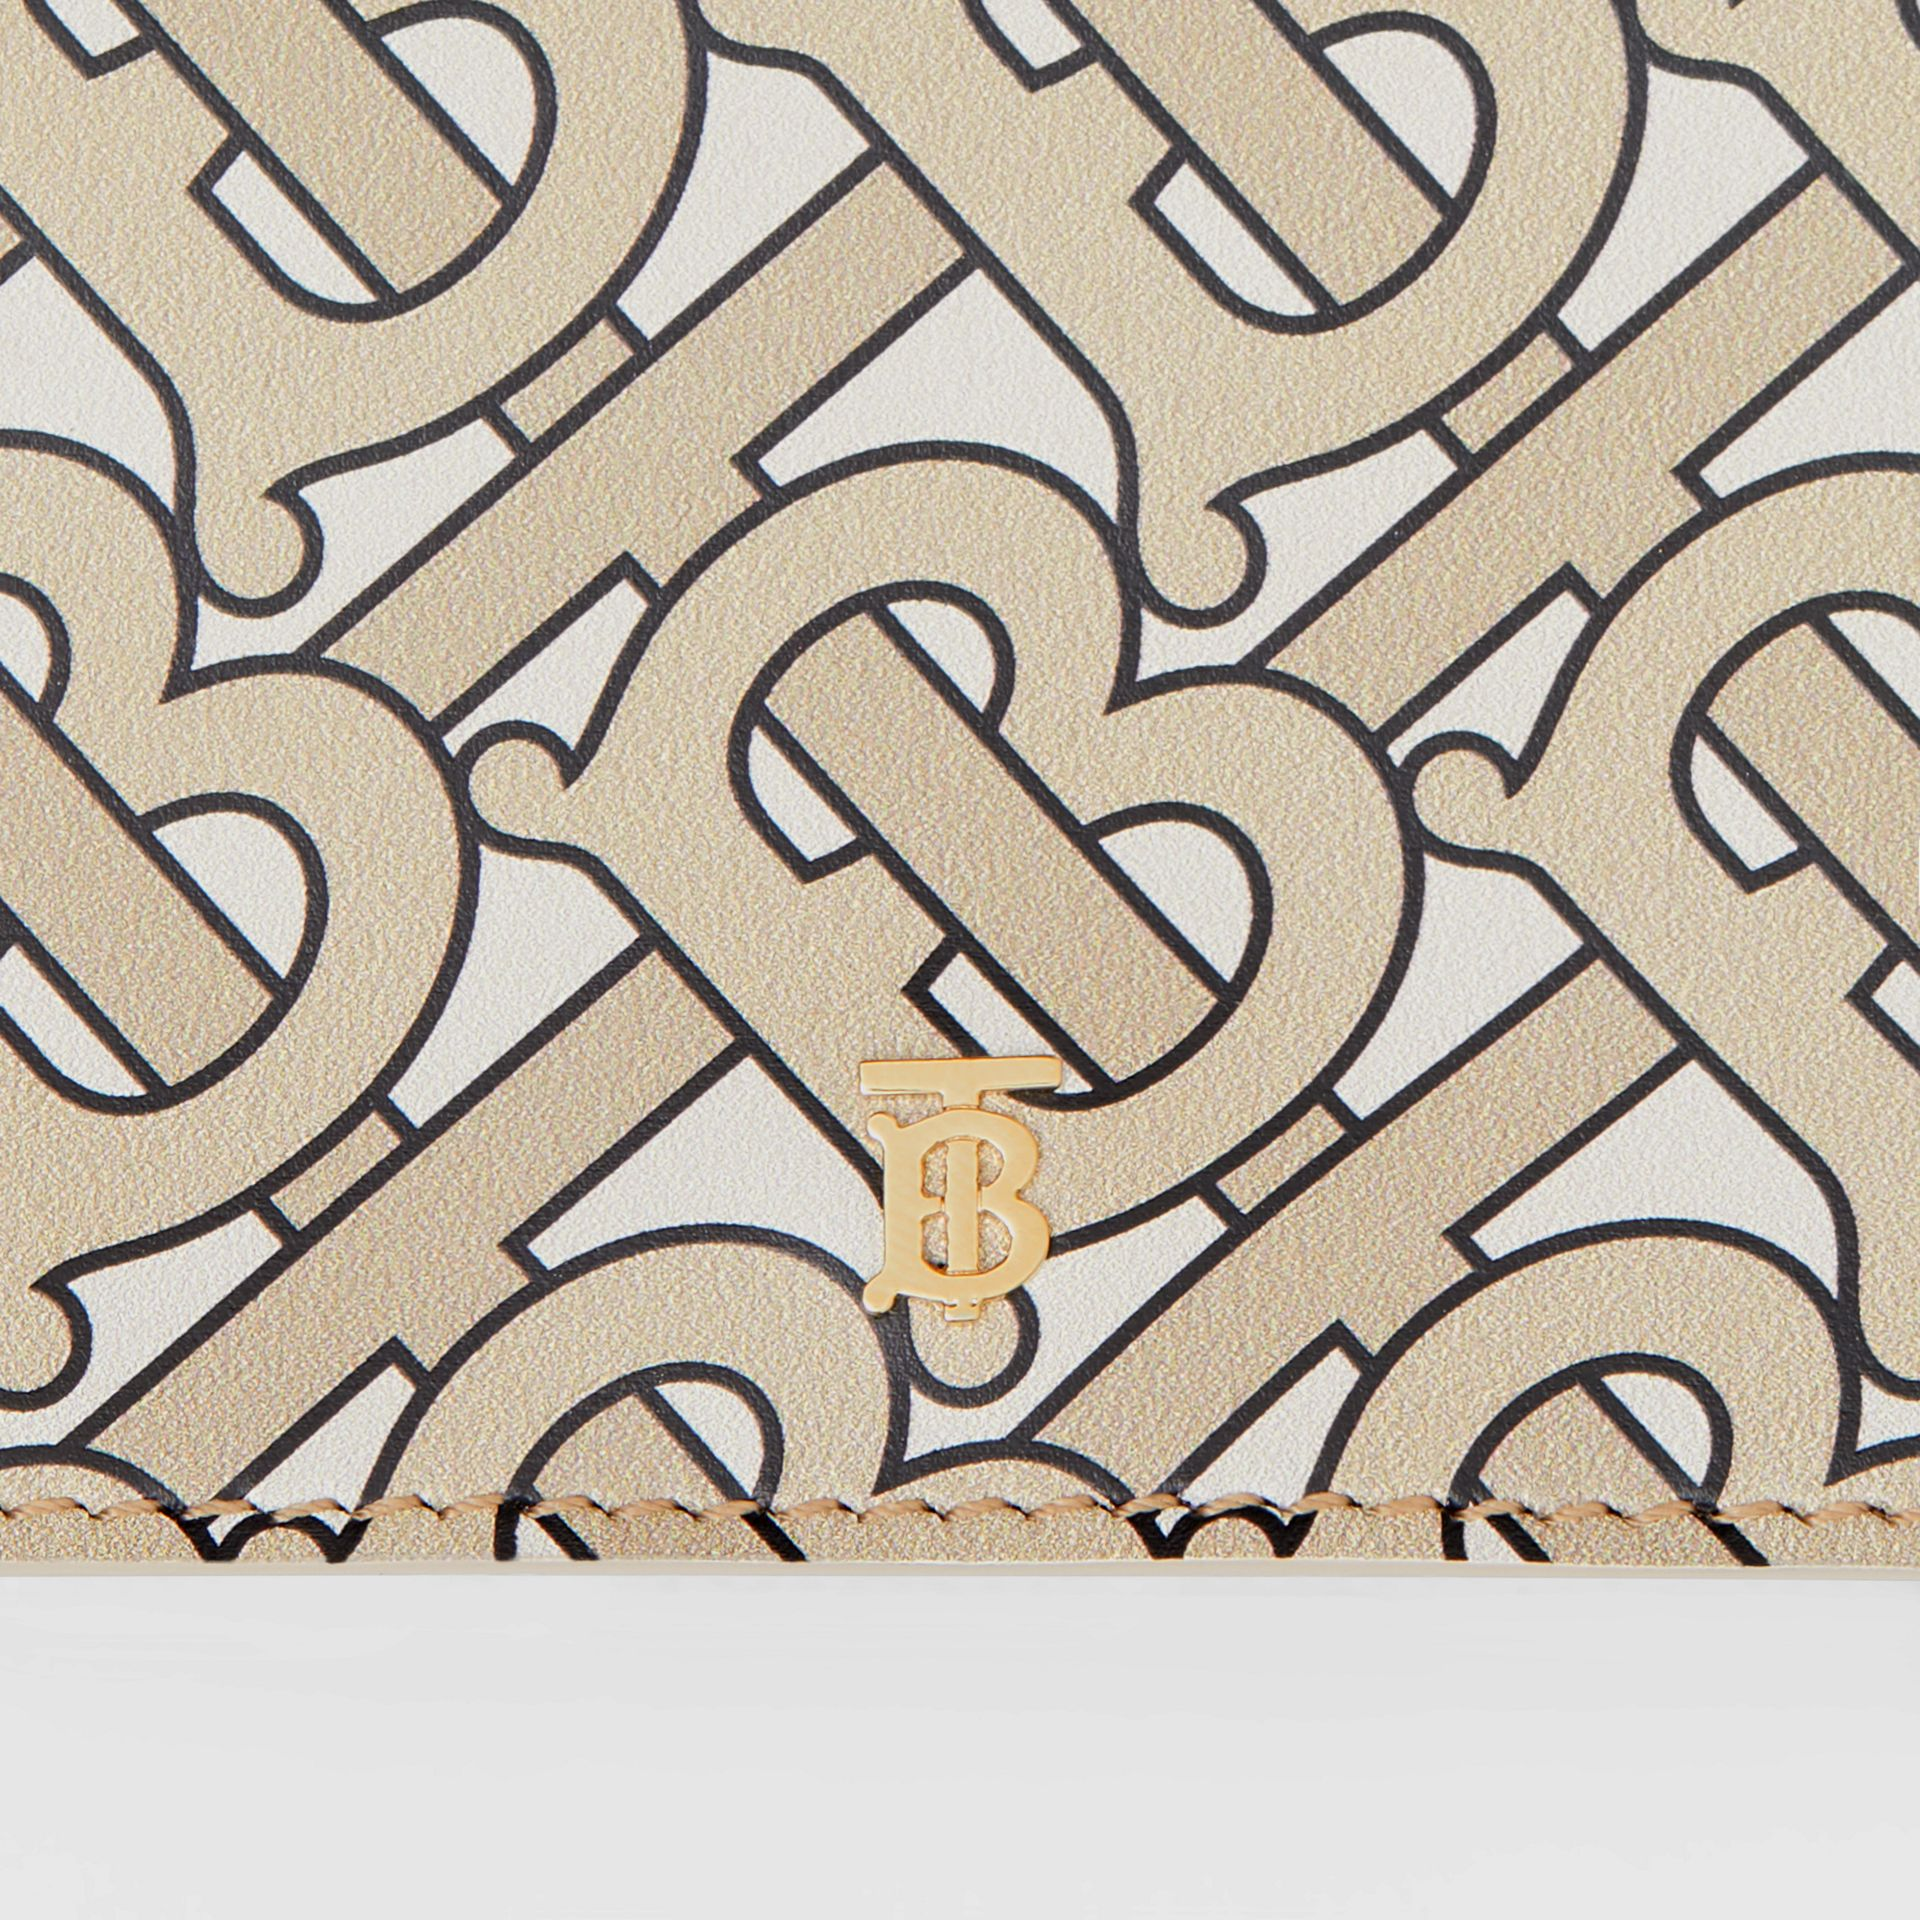 Small Monogram Print Leather Folding Wallet in Beige - Women | Burberry - gallery image 1